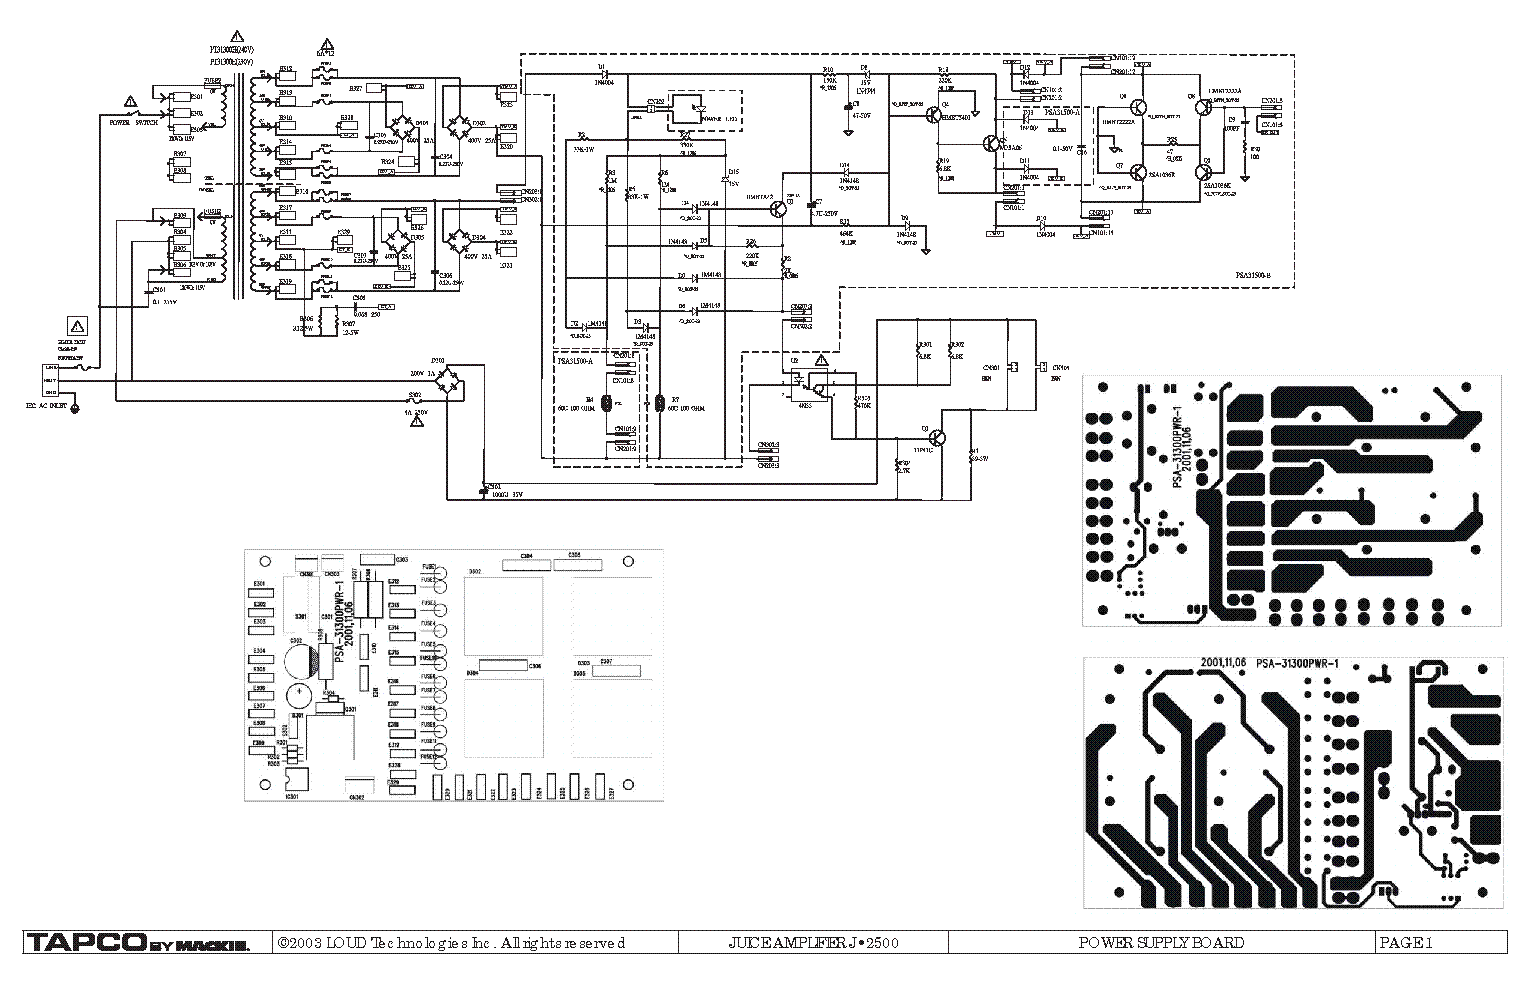 JUICE 2500 POWER SUPPLY PCB ASSEMBLY SCHEMATICS AND LAYOUT Service ...